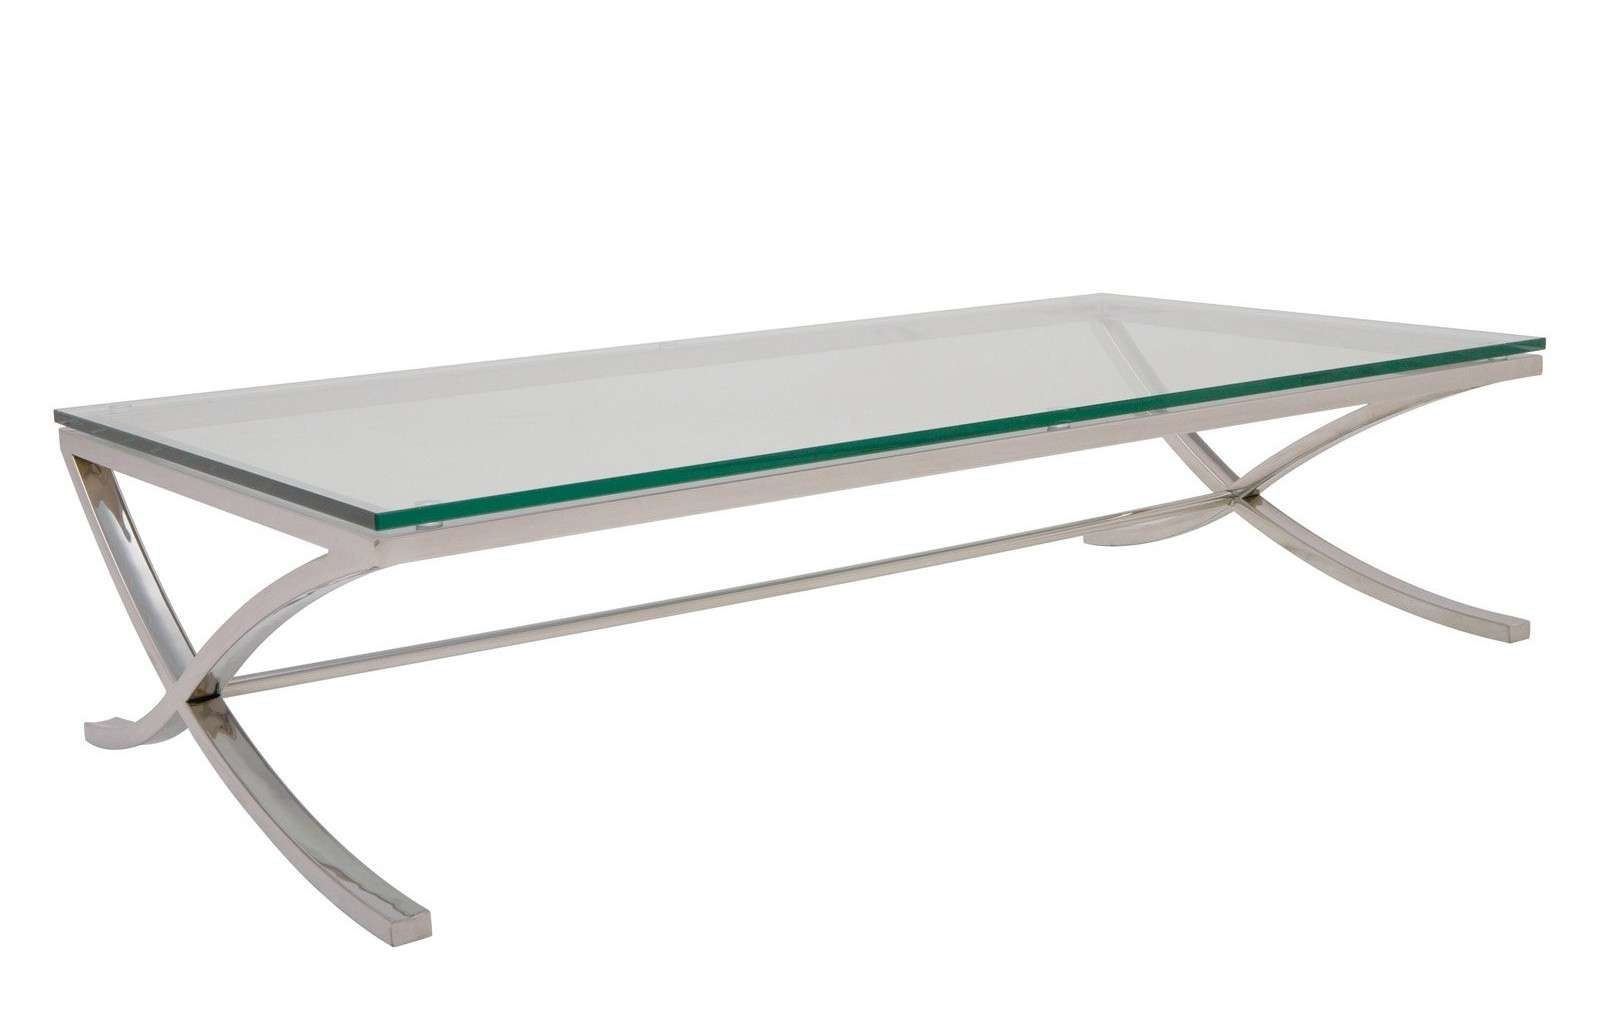 Fashionable Chrome And Glass Coffee Tables Within All You Need To Know About Glass And Chrome Coffee Tables (View 4 of 20)